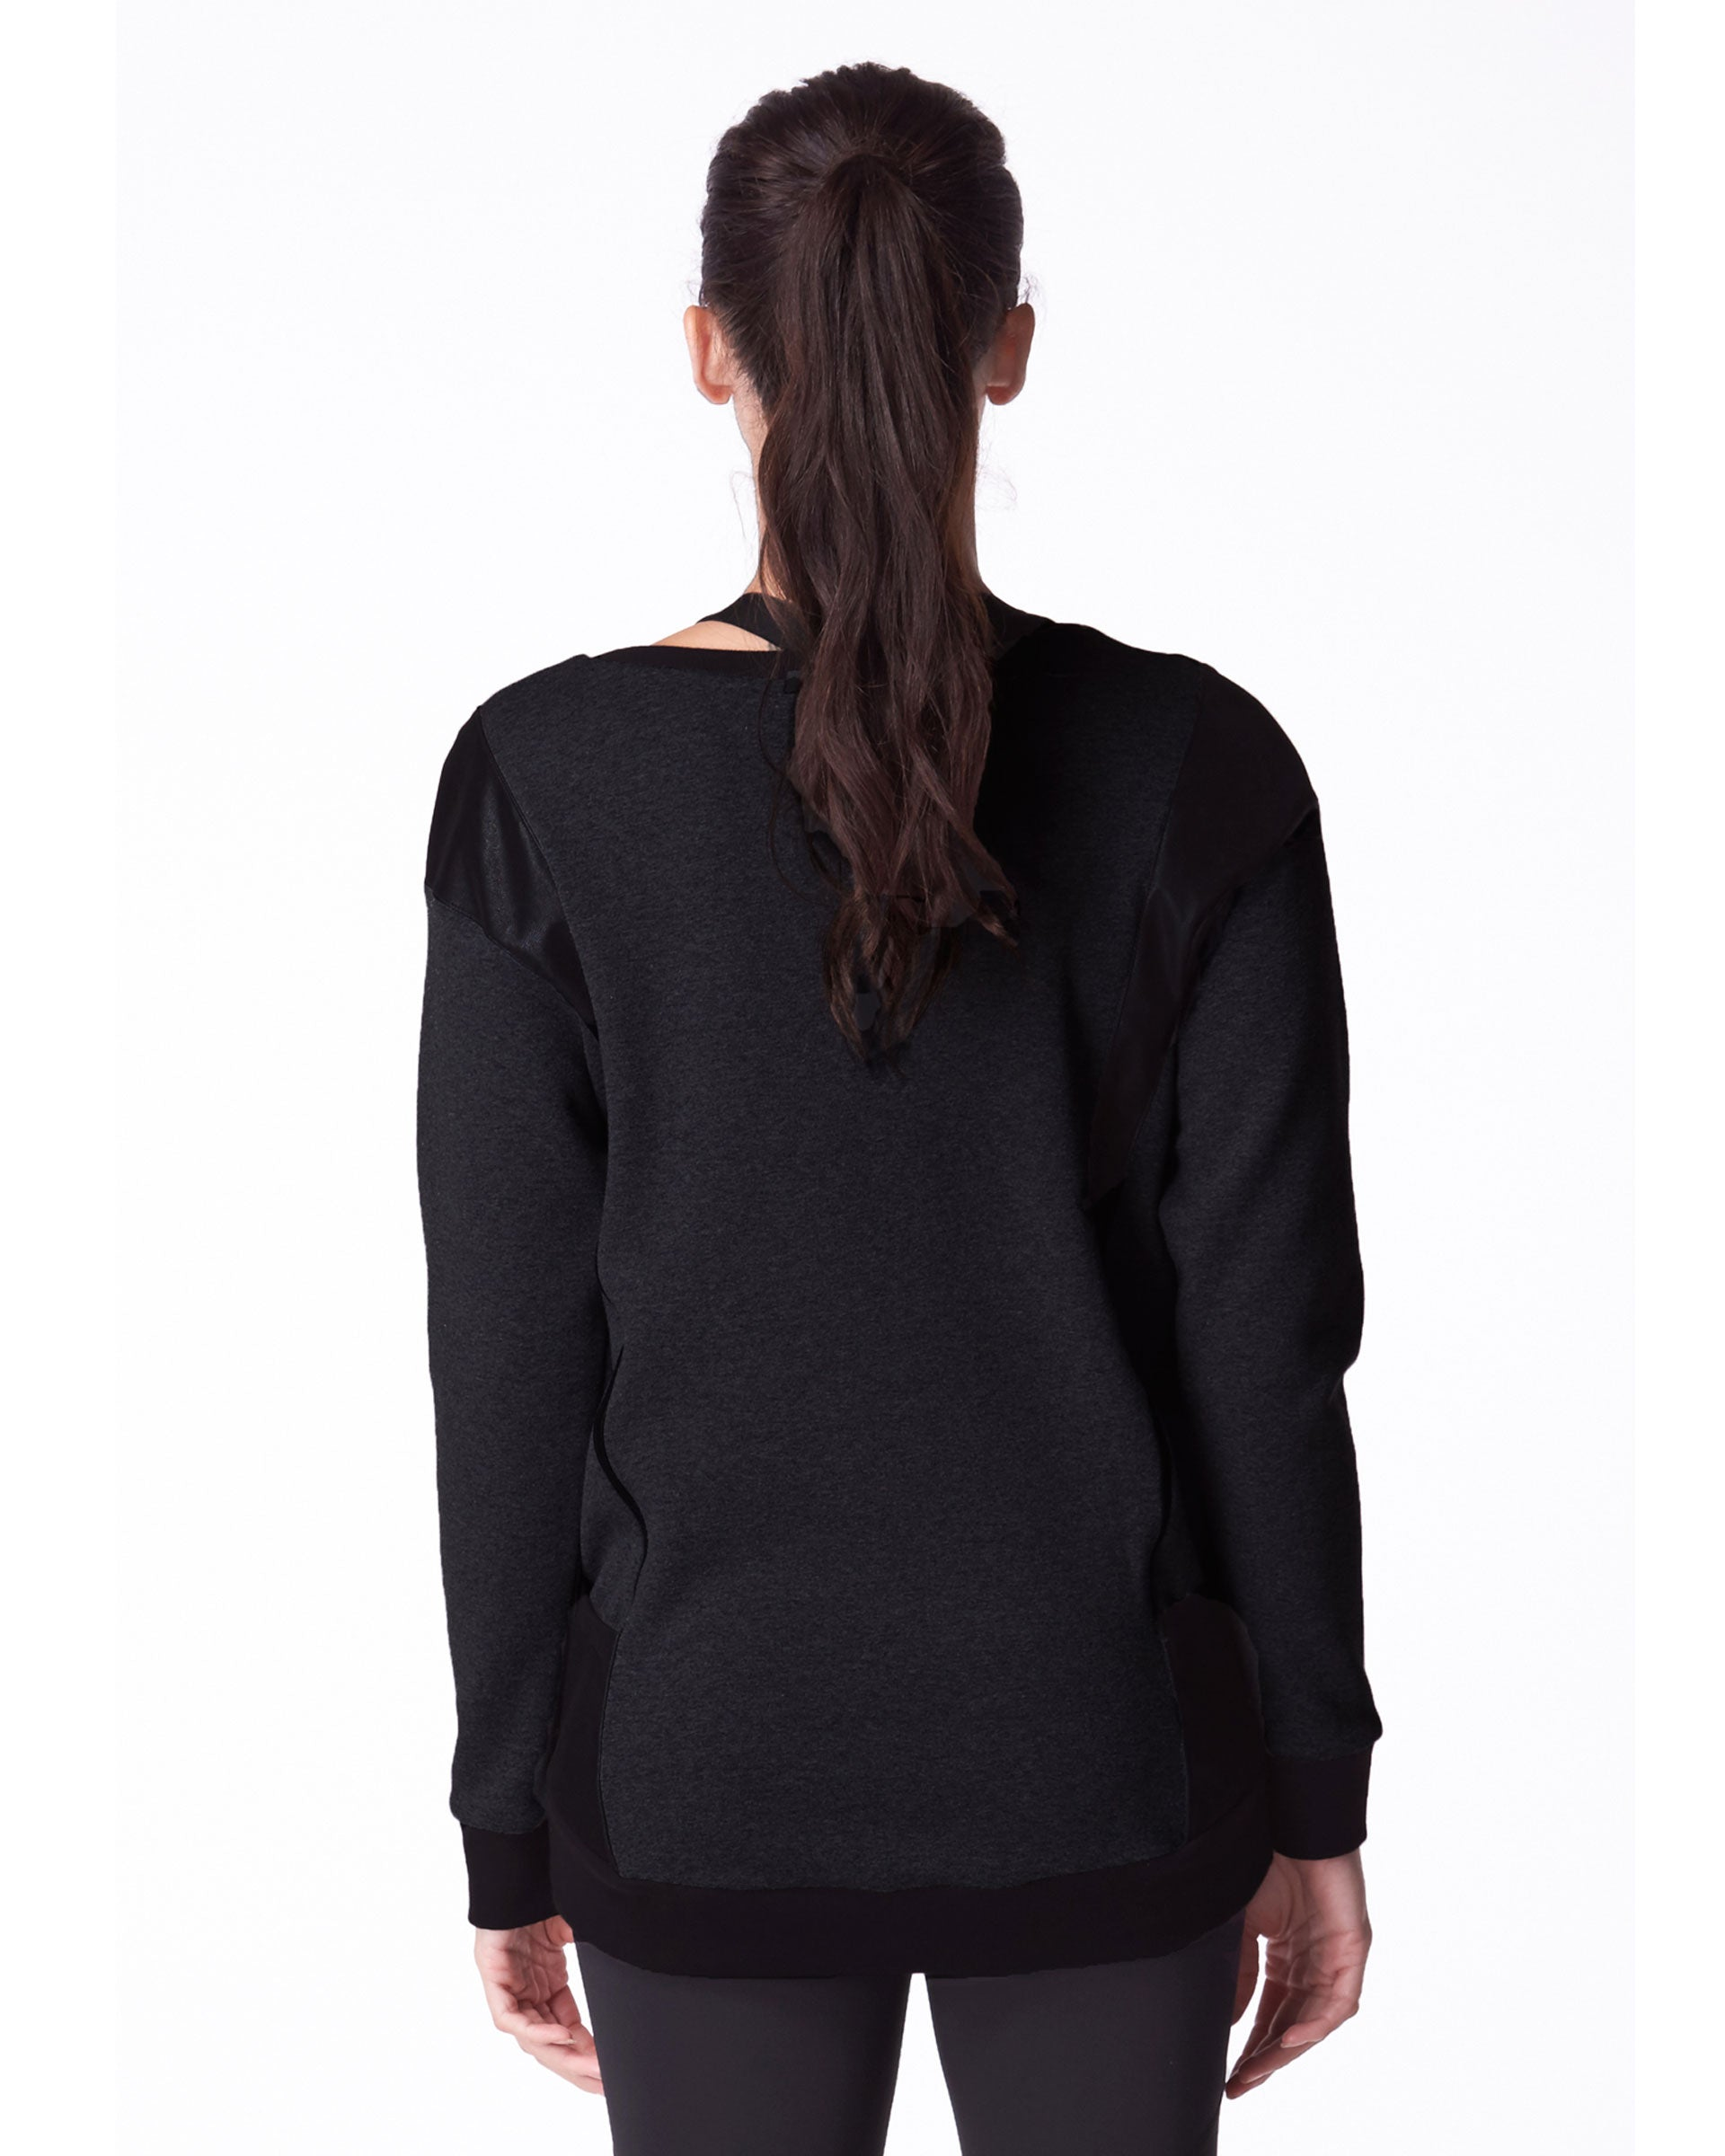 Blade Sweatshirt - Black